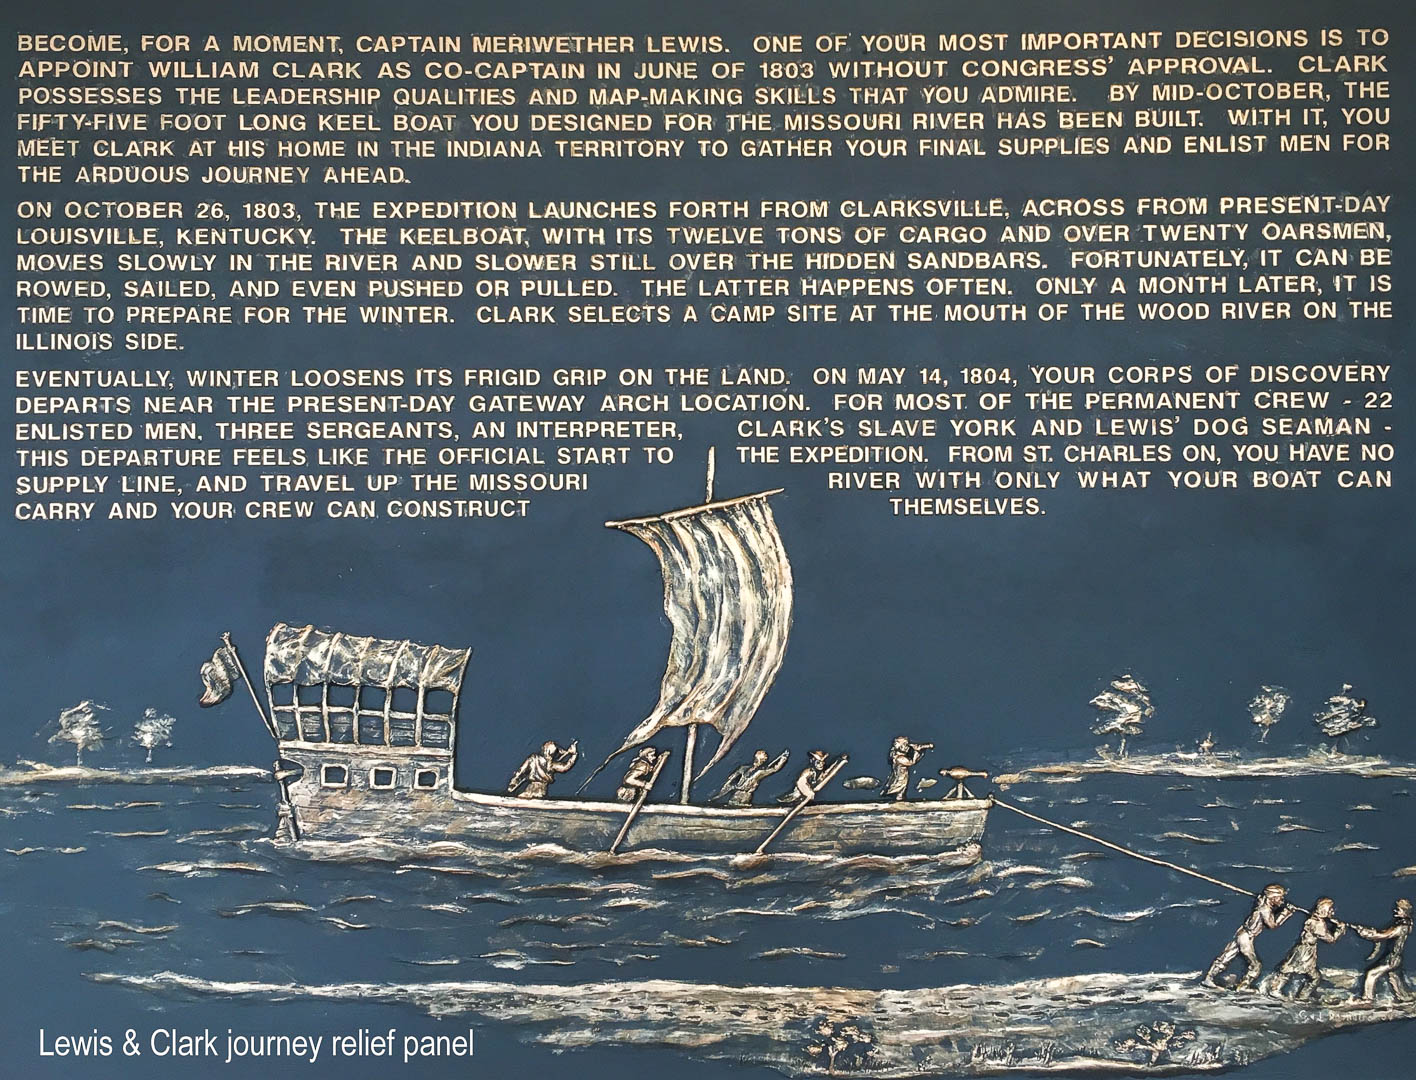 Lewis and Clark Expedition Interpretive Panel by Jim and Christina Demetro